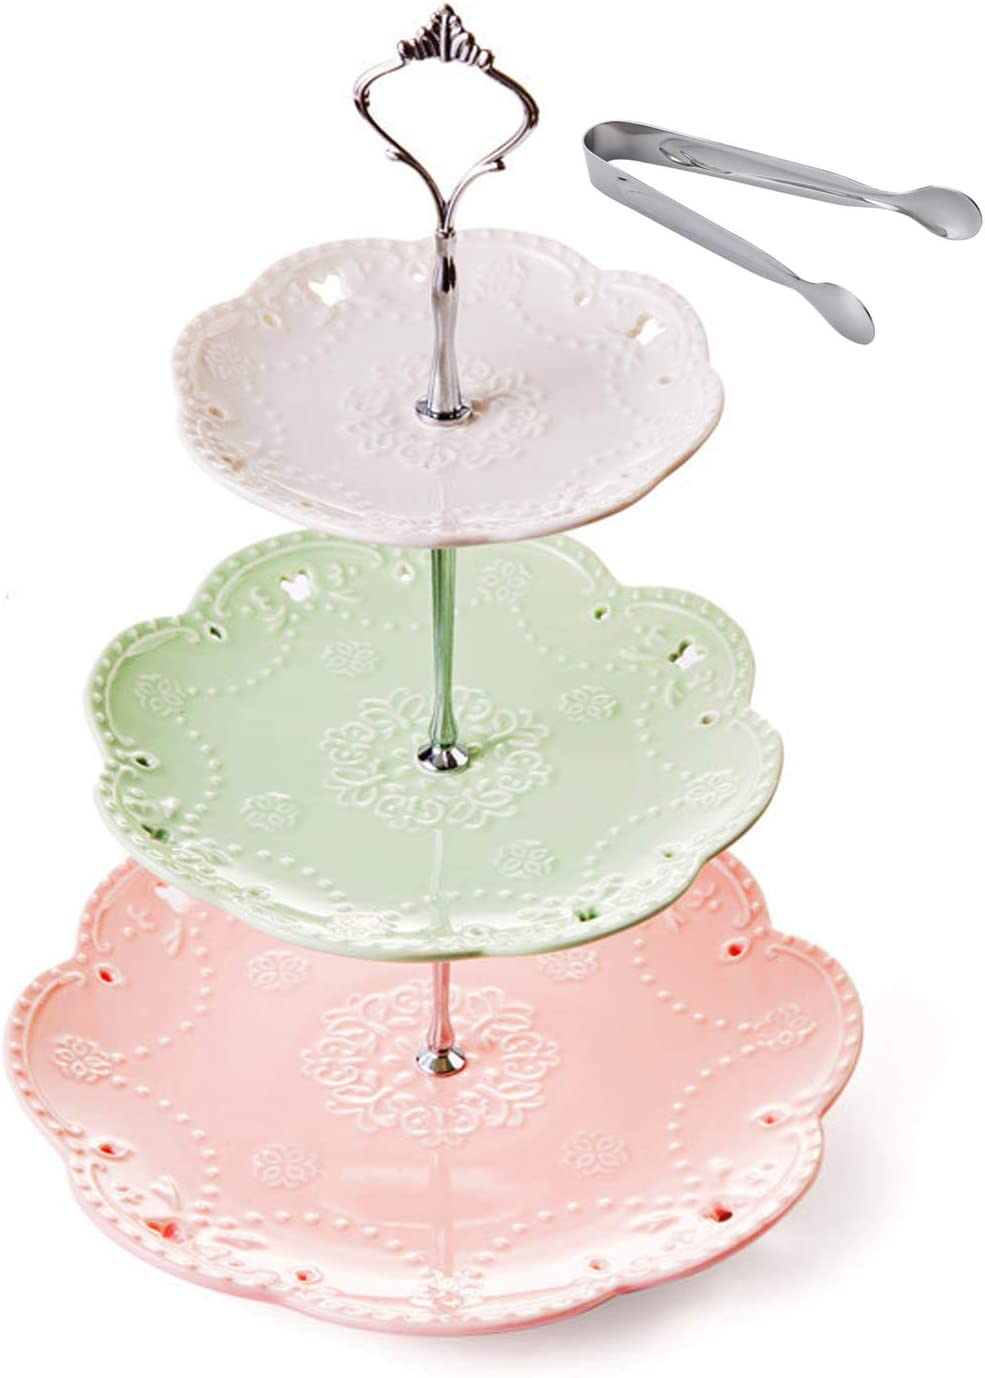 Jusalpha 3-tier Ceramic Cake Stand-Dessert Stand-Cupcake Stand-Tea Party Serving Platter, Comes In a Gift Box- Free Sugar Tong,3 Color (Silver)